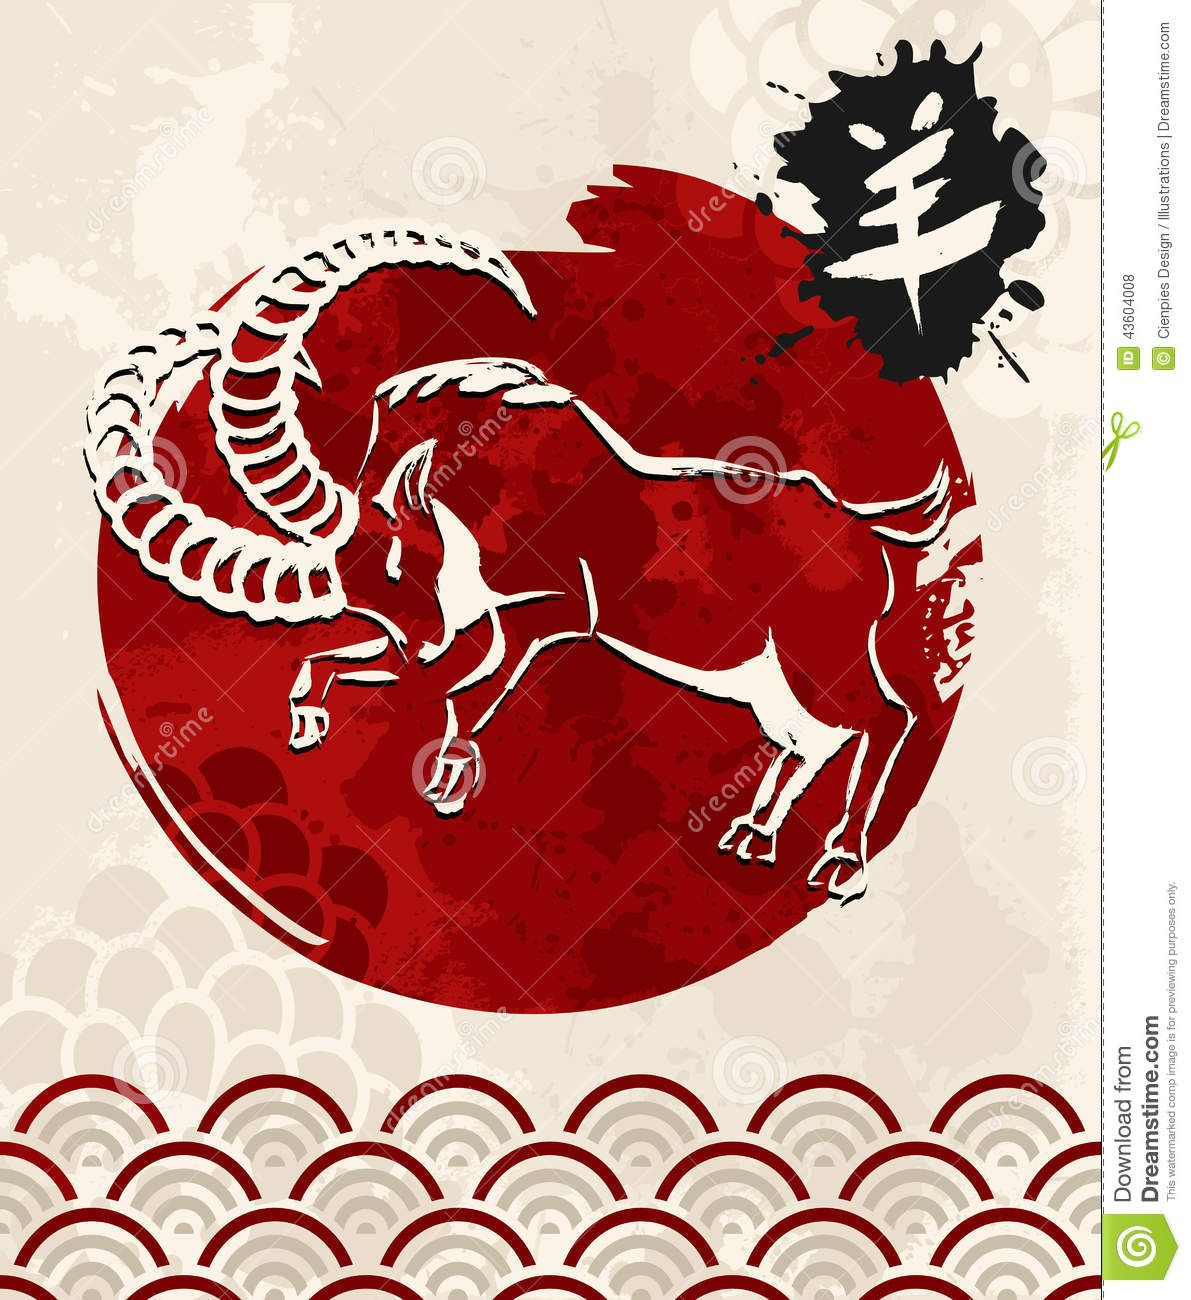 2015 new year of the goat chinese calligraphy and hand drawn animal composition vector file organized in layers for easy editing - 2015 Chinese New Year Animal